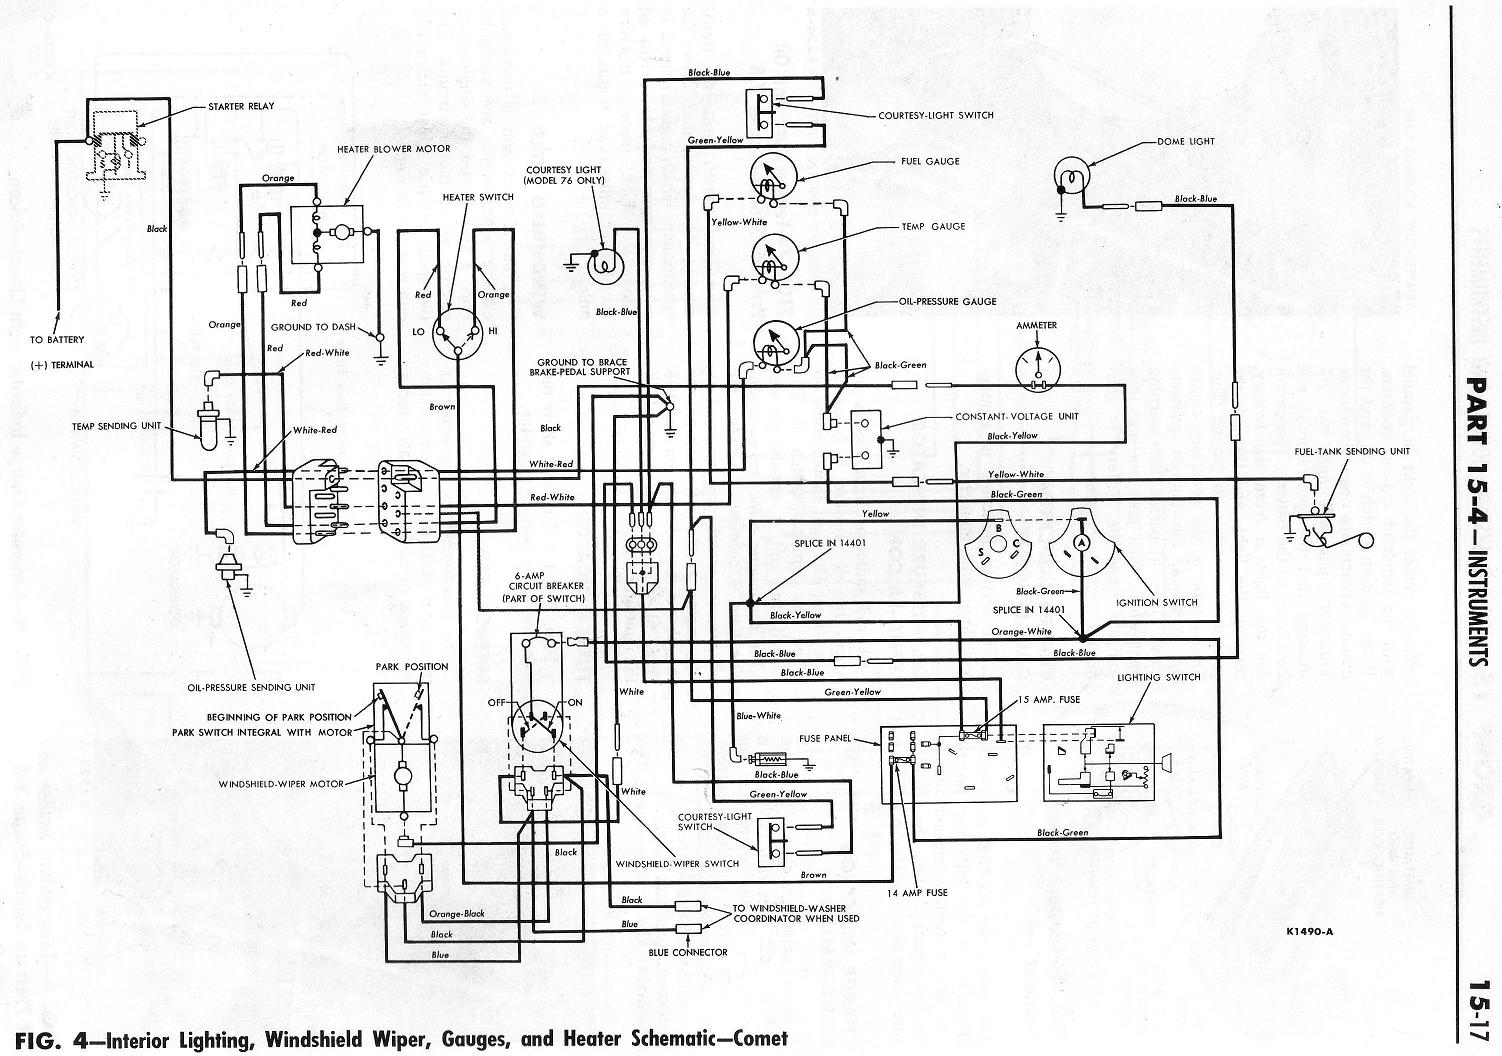 Ford Thunderbird Wiring Diagram For Brake And Taillights